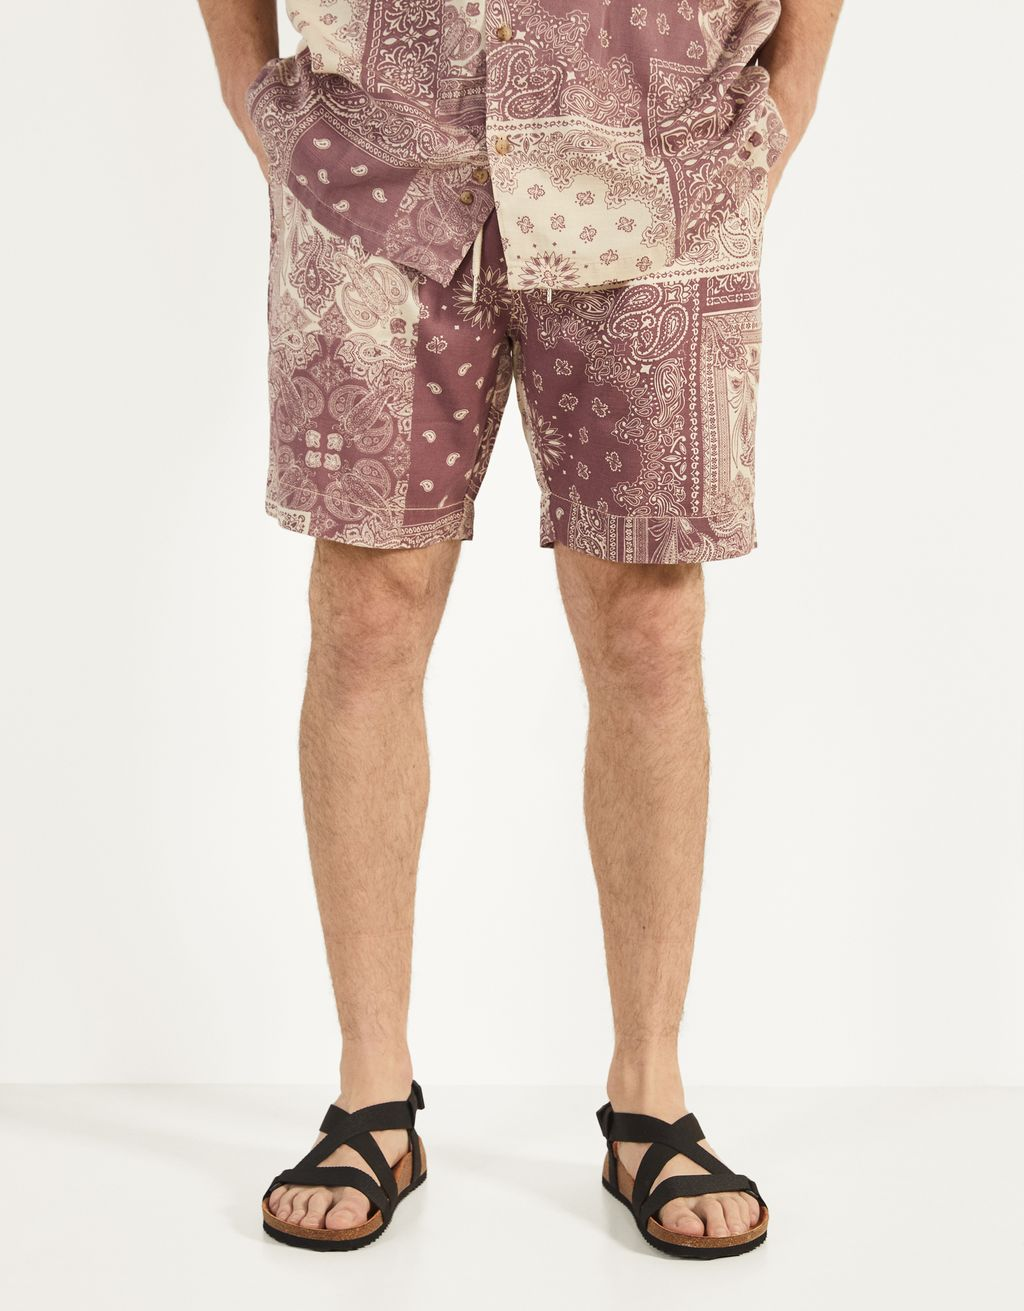 Jogging Bermuda shorts with paisley print